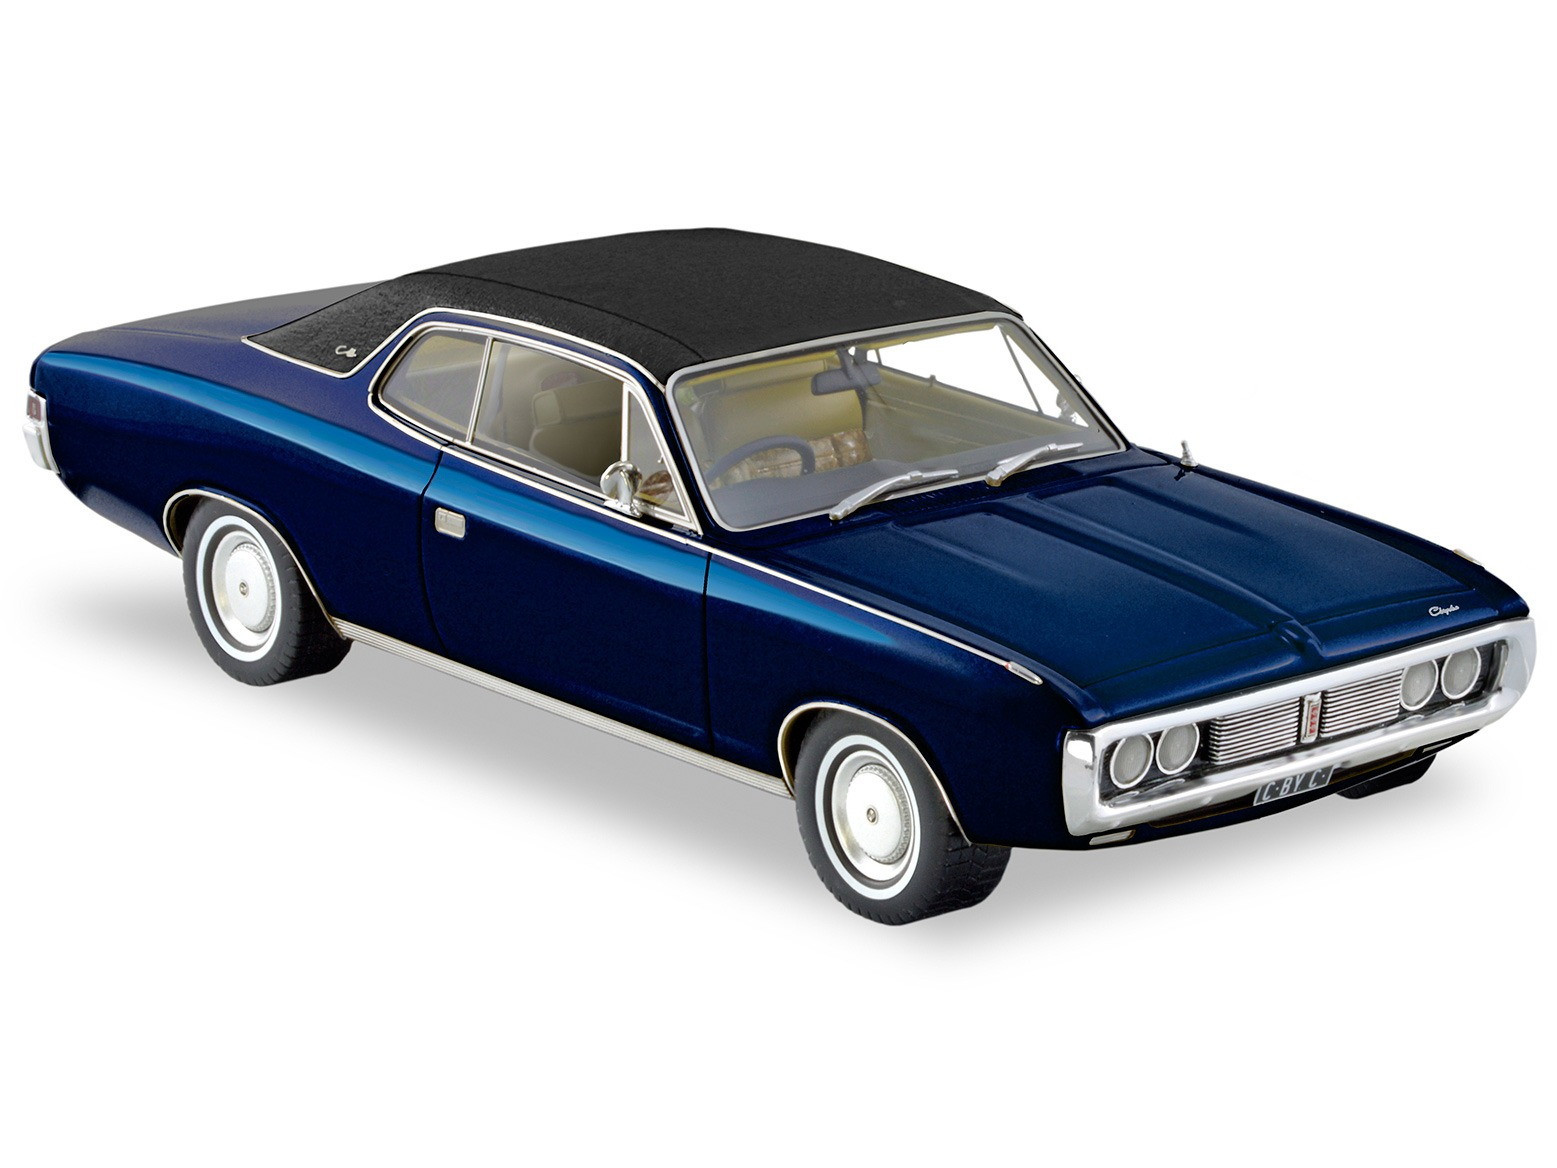 1972 Chrysler By Chrysler Coupe – Regal Blue Metallic